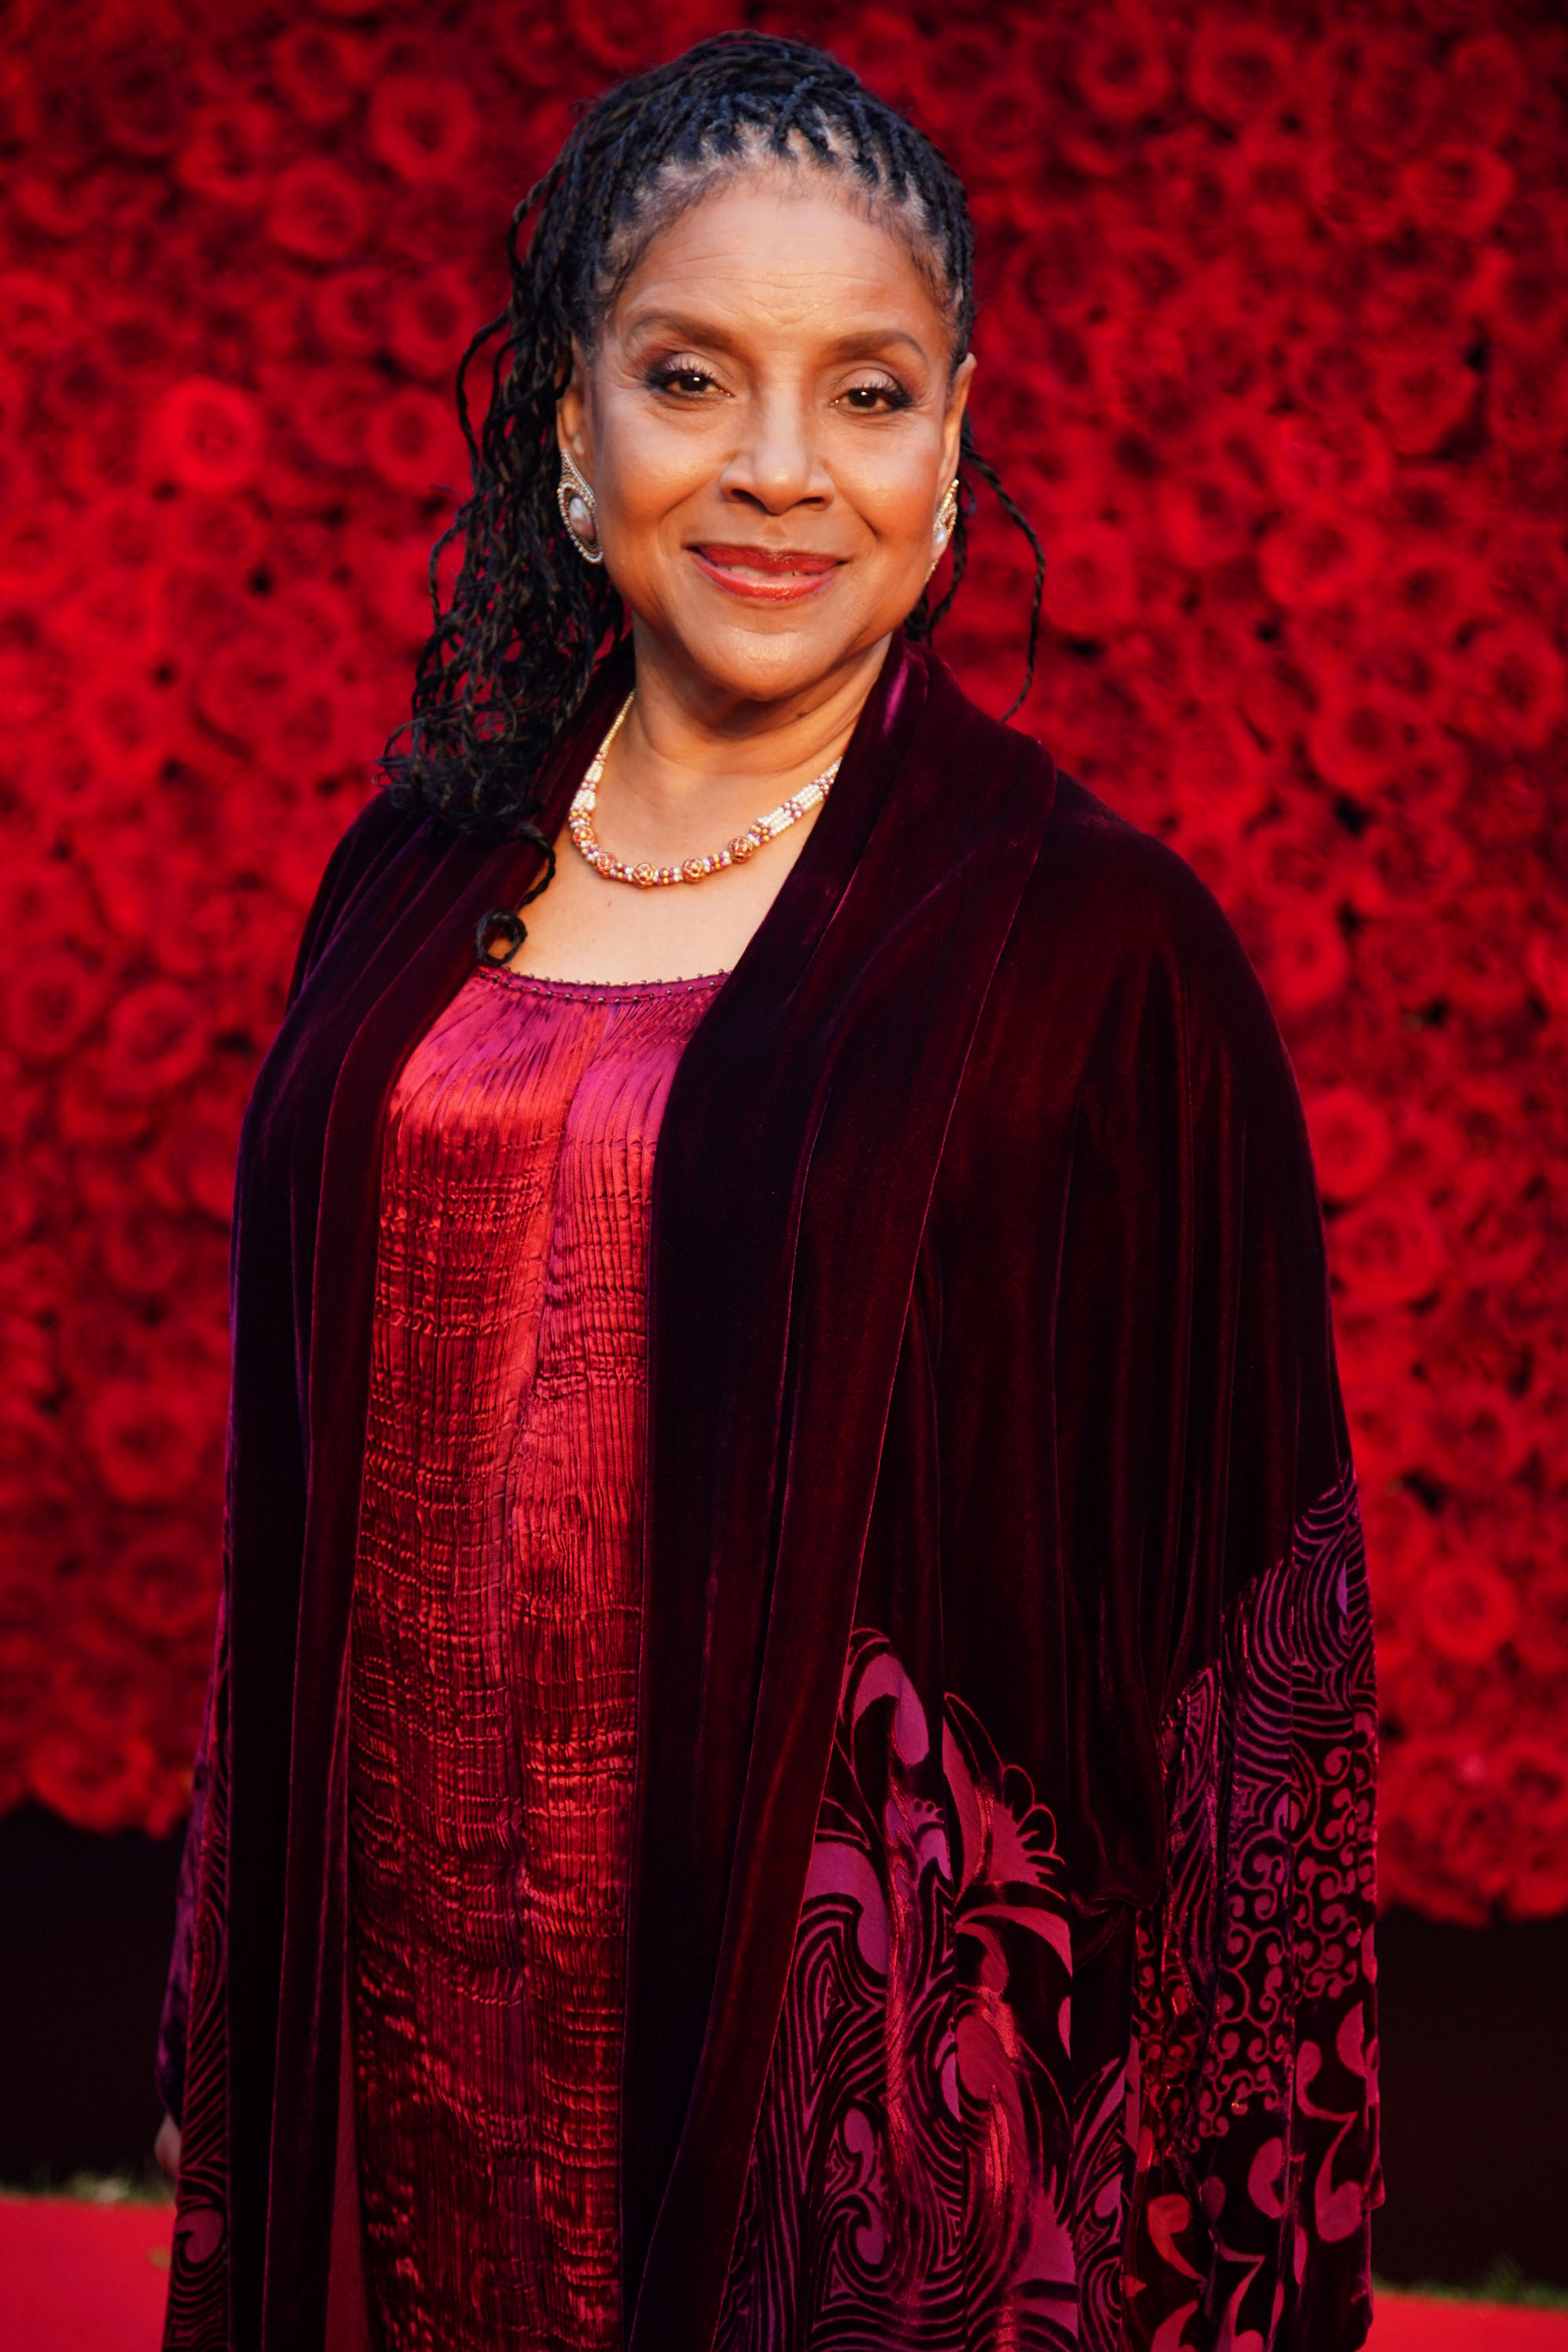 Phylicia Rashad appointed dean of fine arts at Howard University